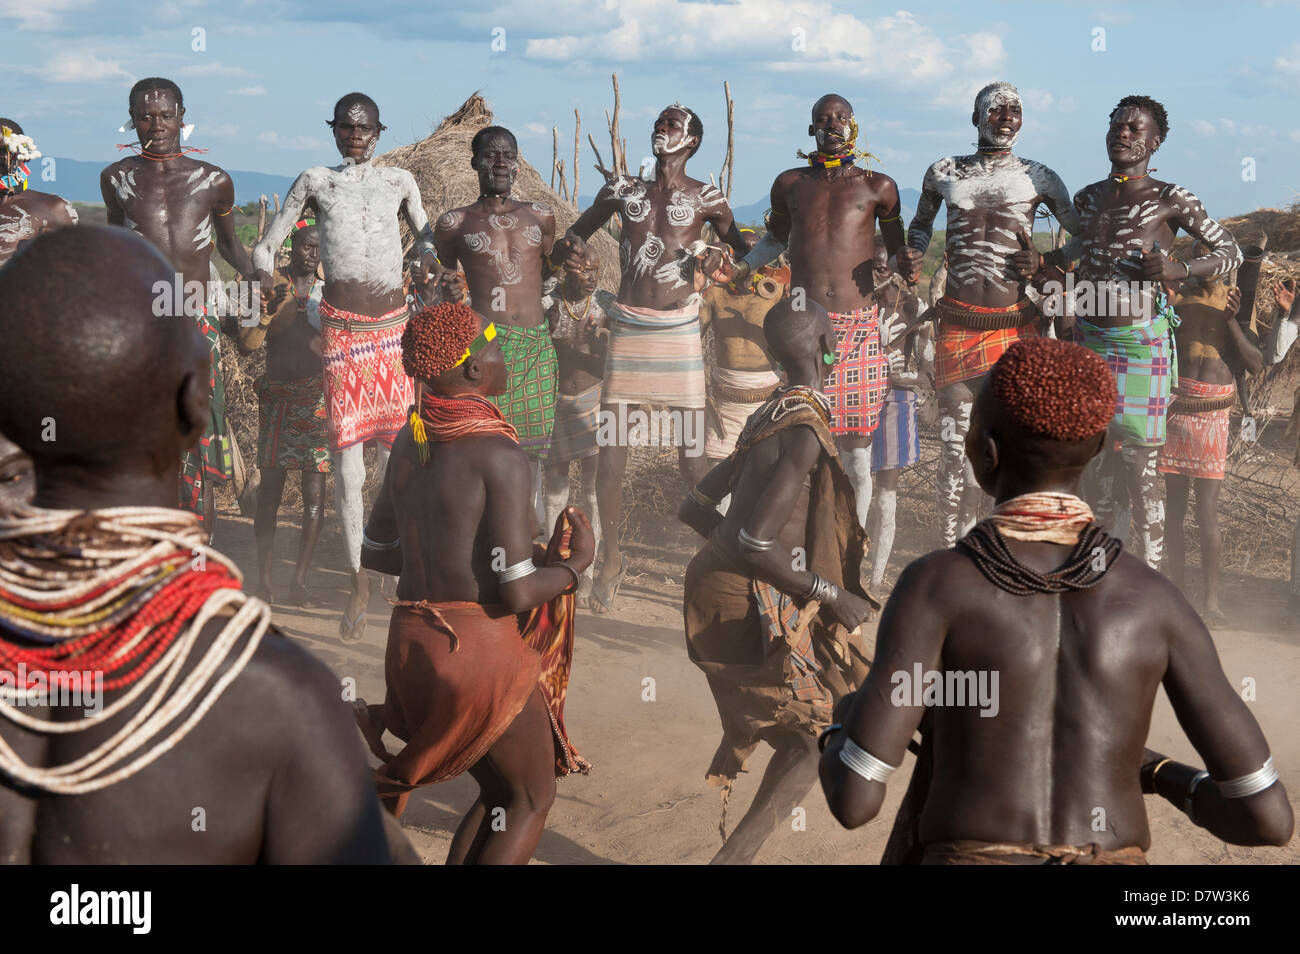 Karo people with body paintings participating in a tribal dance ceremony, Omo River Valley, Southern Ethiopia - Stock Image